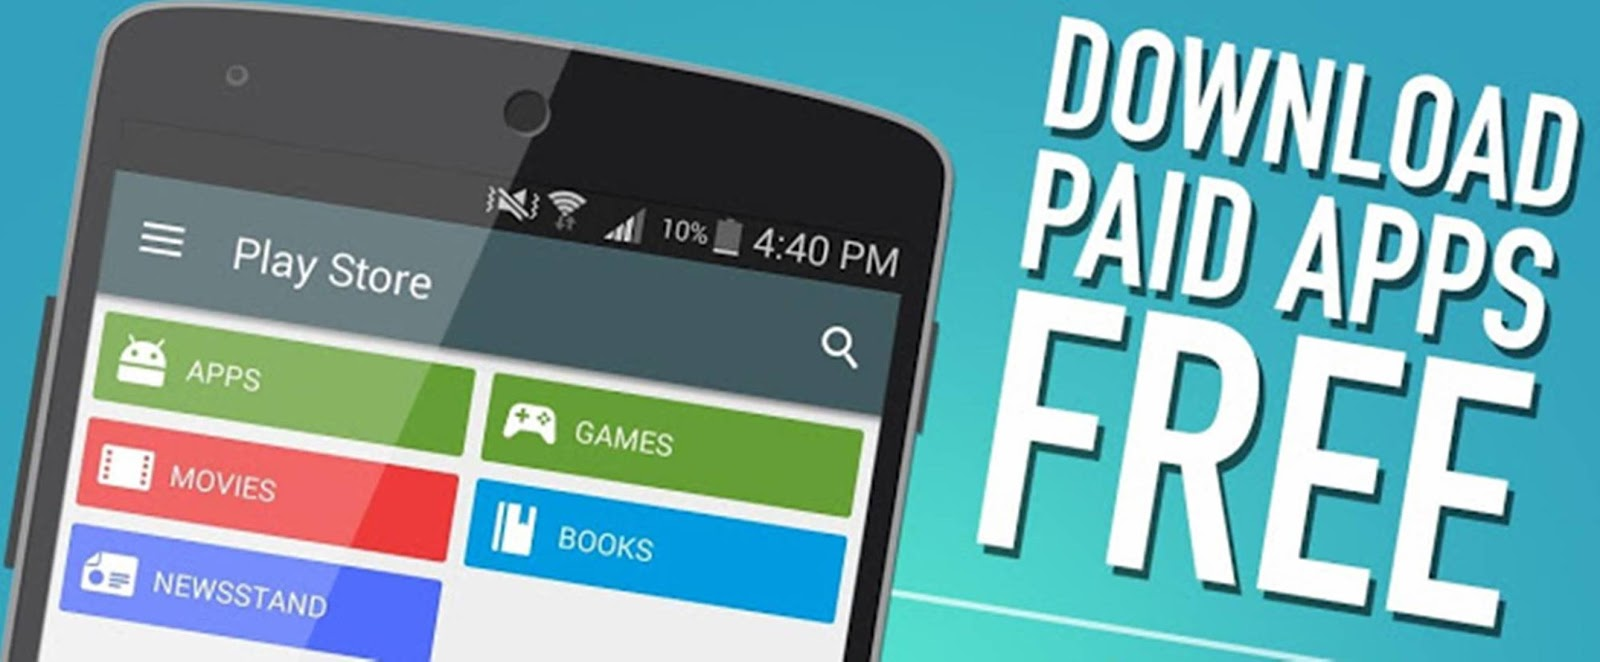 Free Apps on google playstore